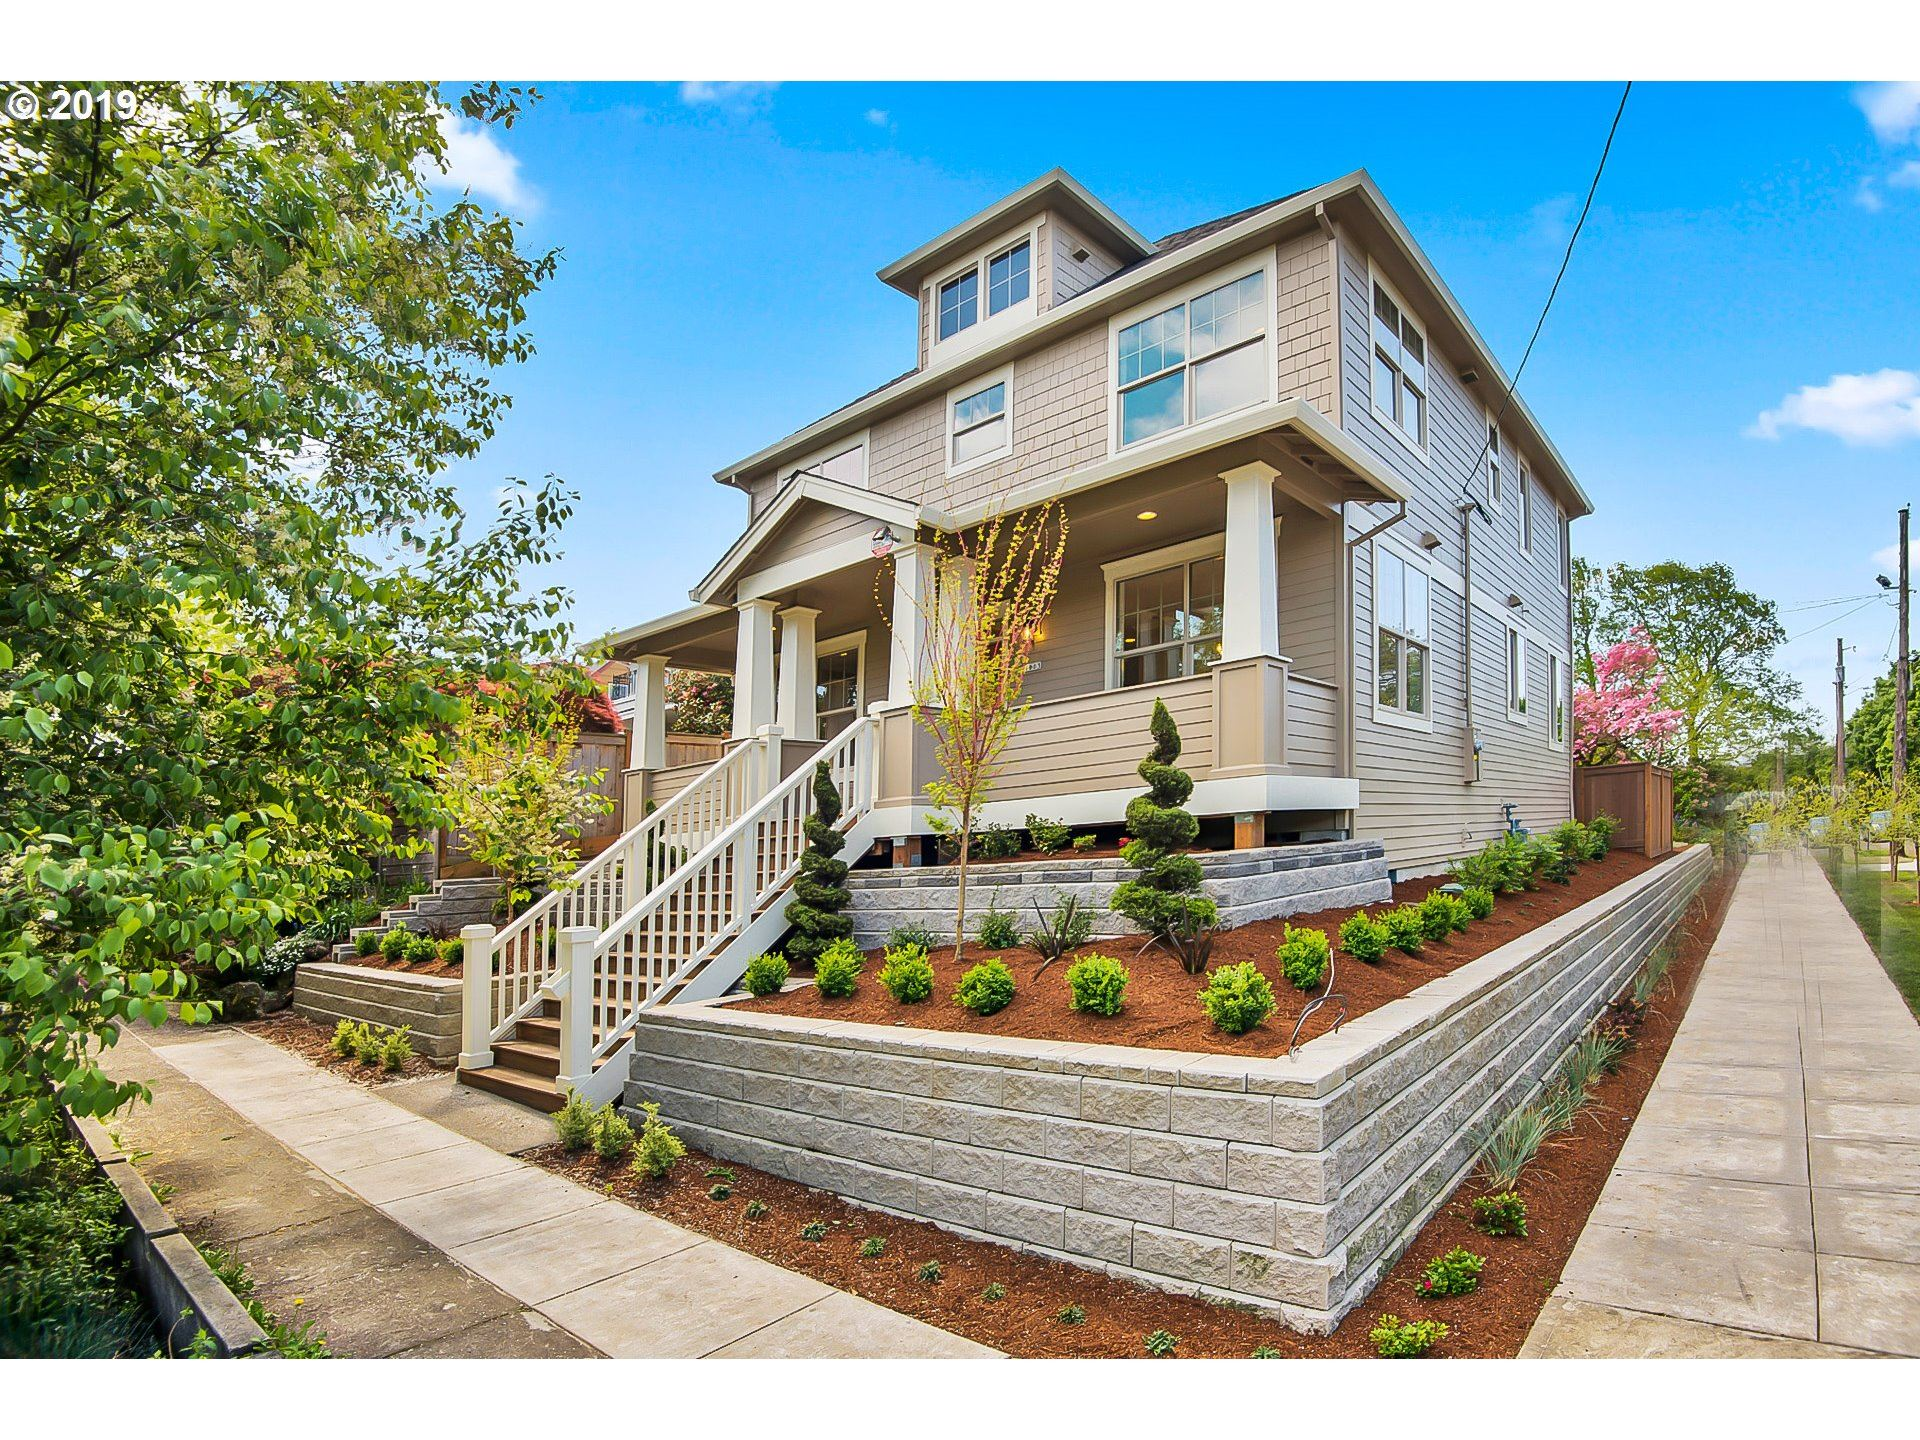 1903 SE 29TH AVE, Portland, OR 97214 - MLS#: 19340946